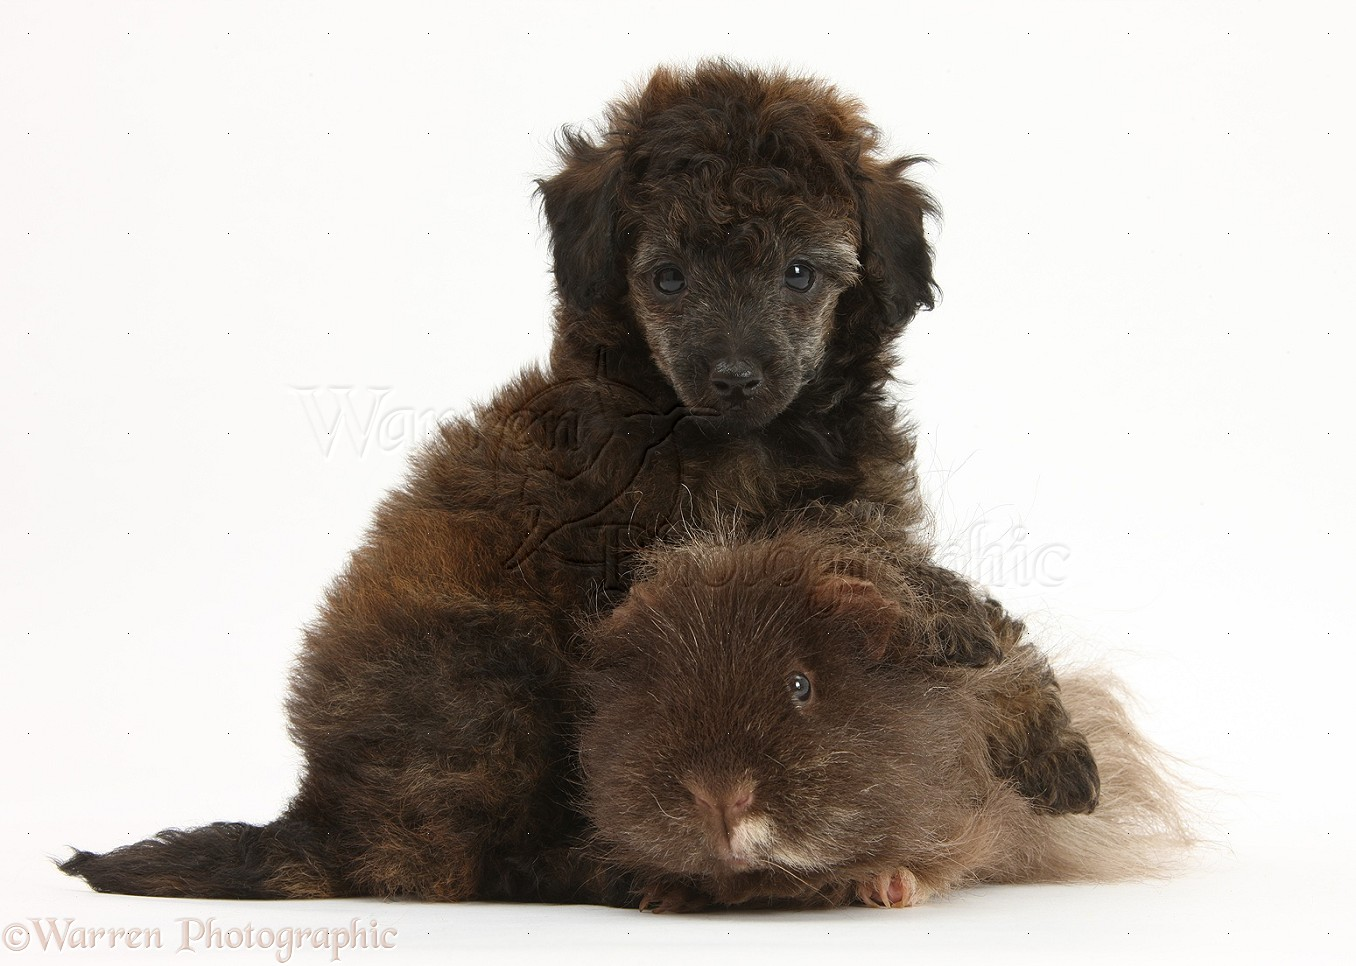 Pets: Red merle Toy Poodle pup and shaggy Guinea pig photo - WP28899